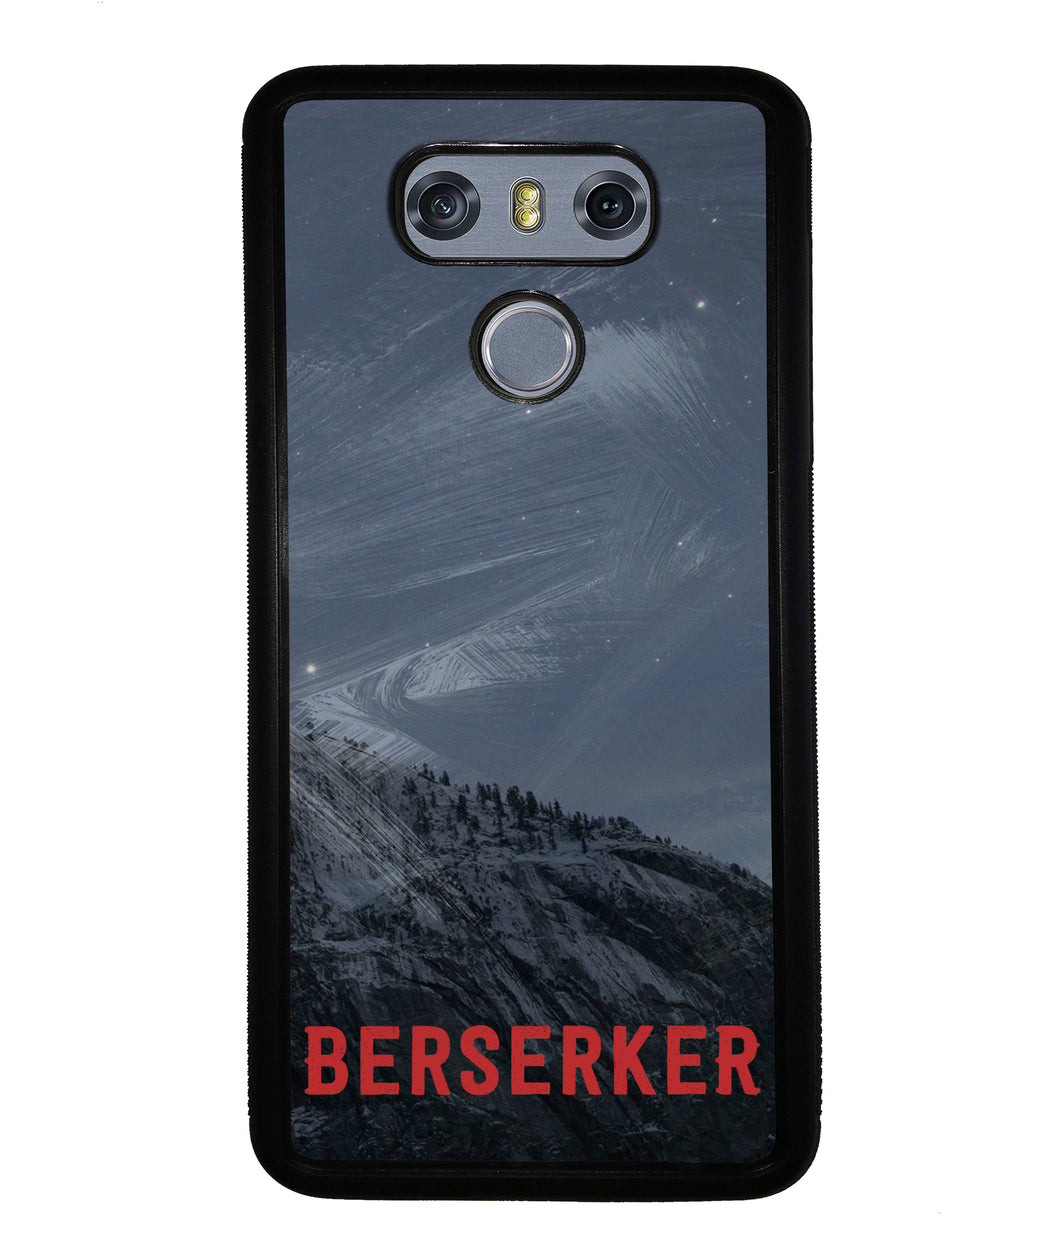 Emmy Laybourne Berserker | LG Phone Case